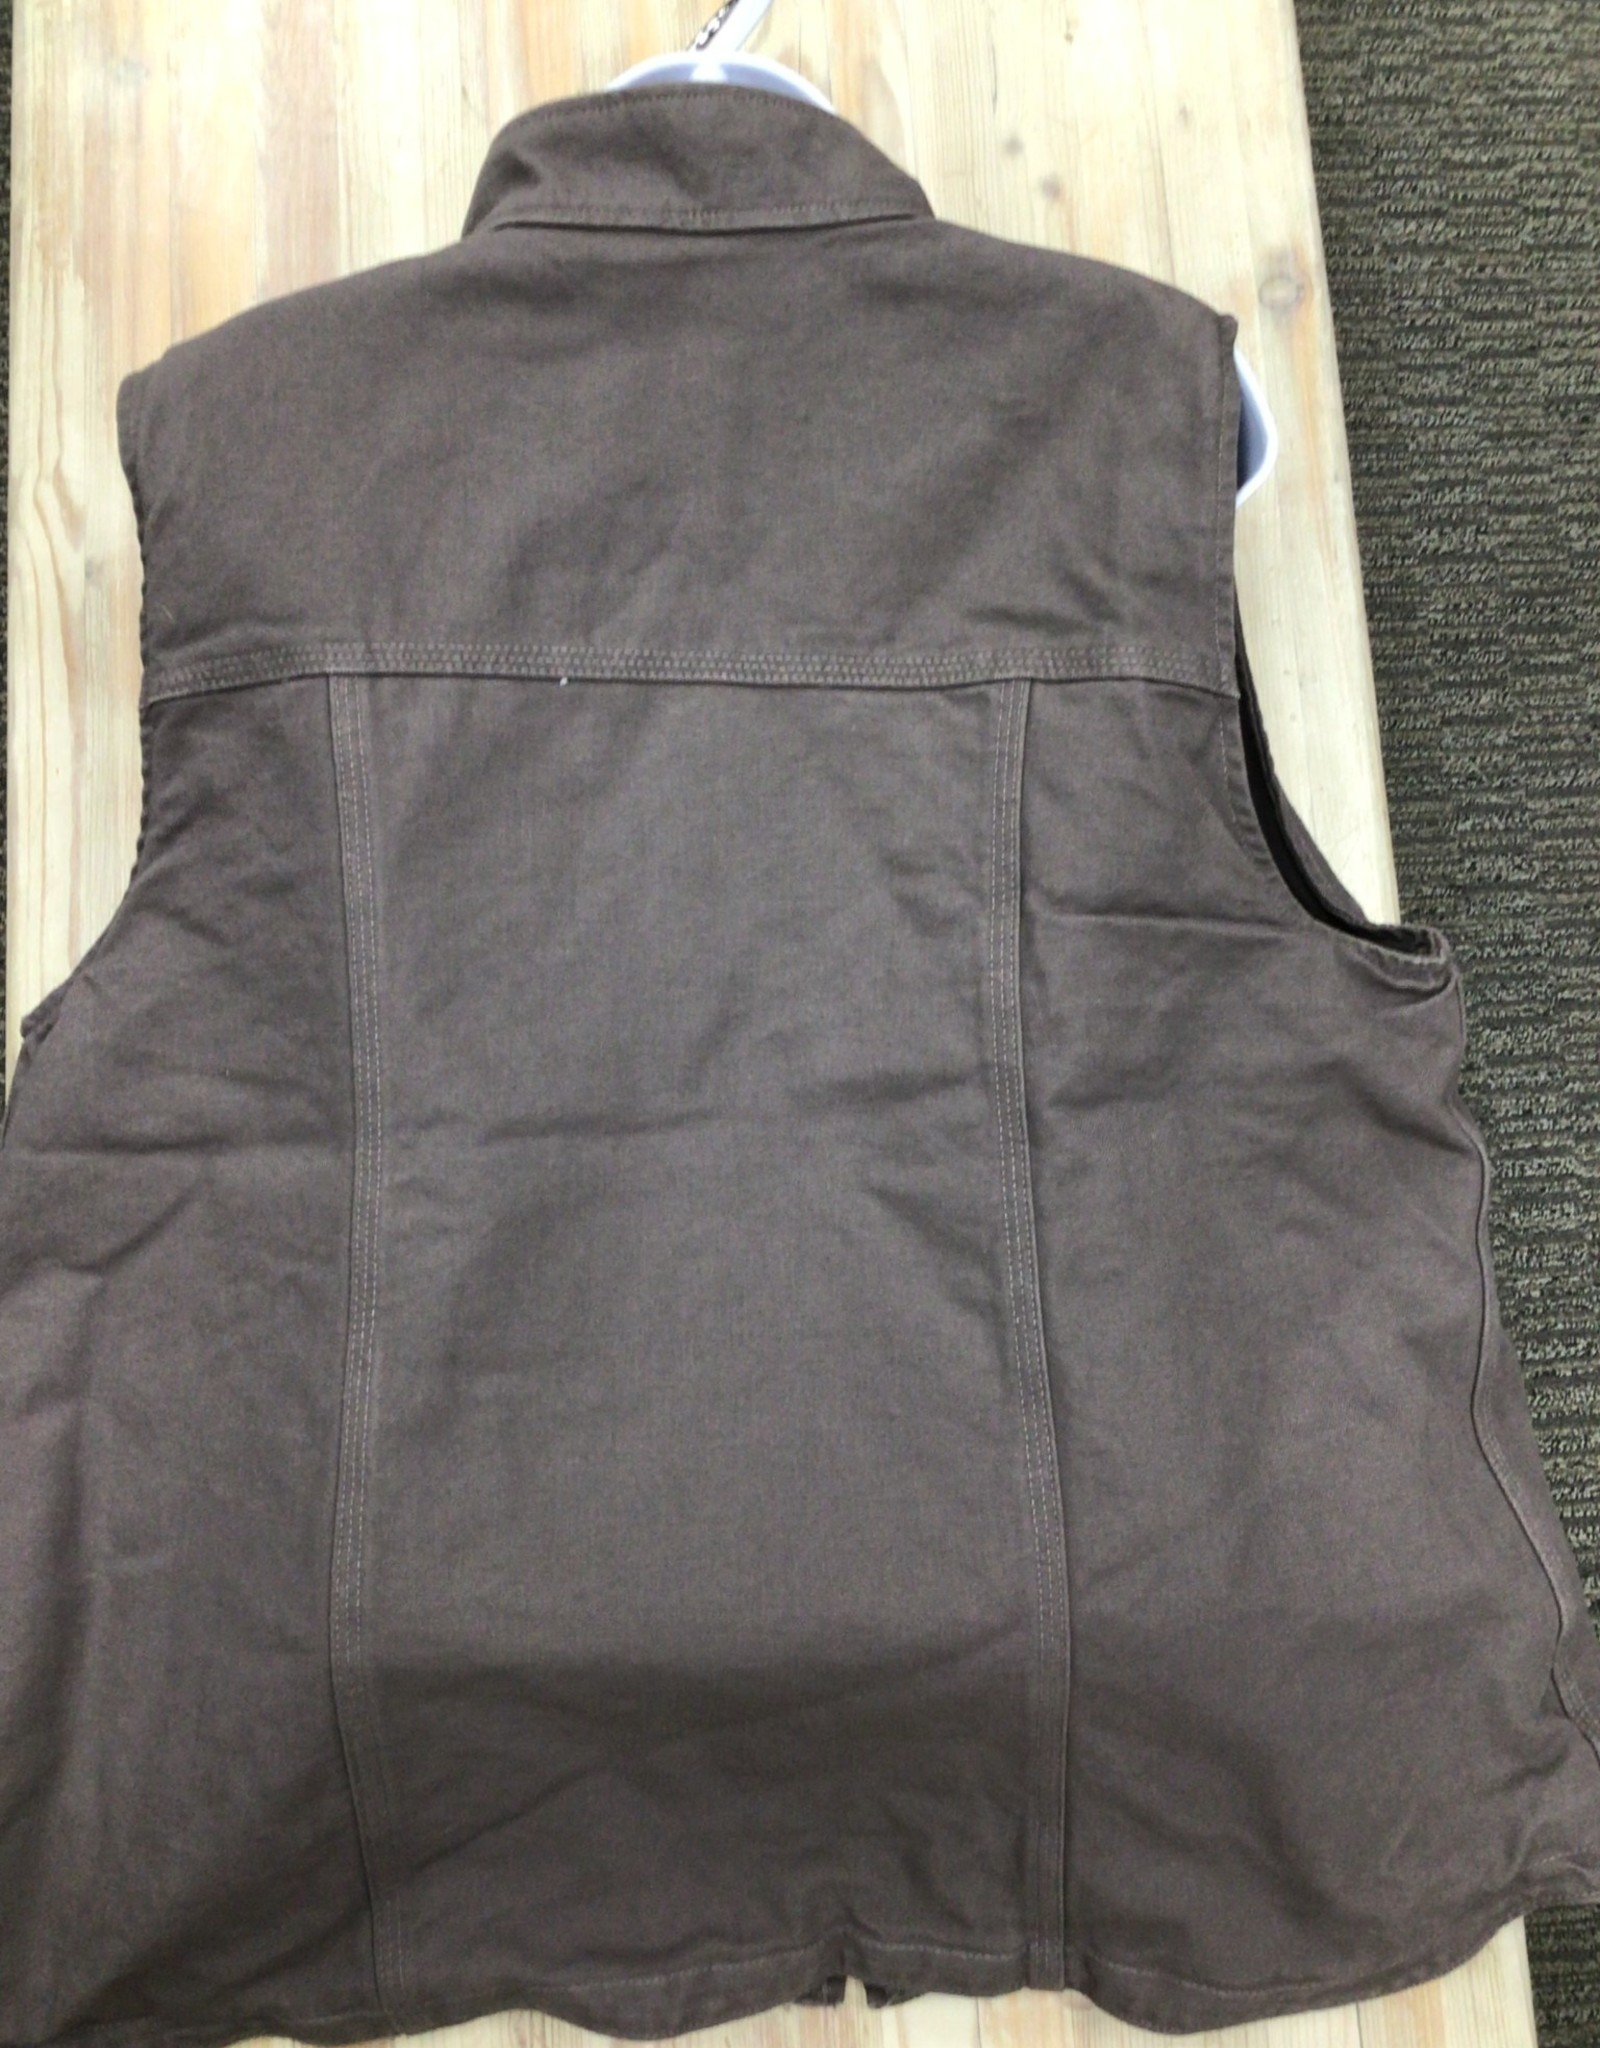 Carhartt Carhartt 104224 Relaxed Fit Washed Duck Lined Mock Neck Vest Ladies'